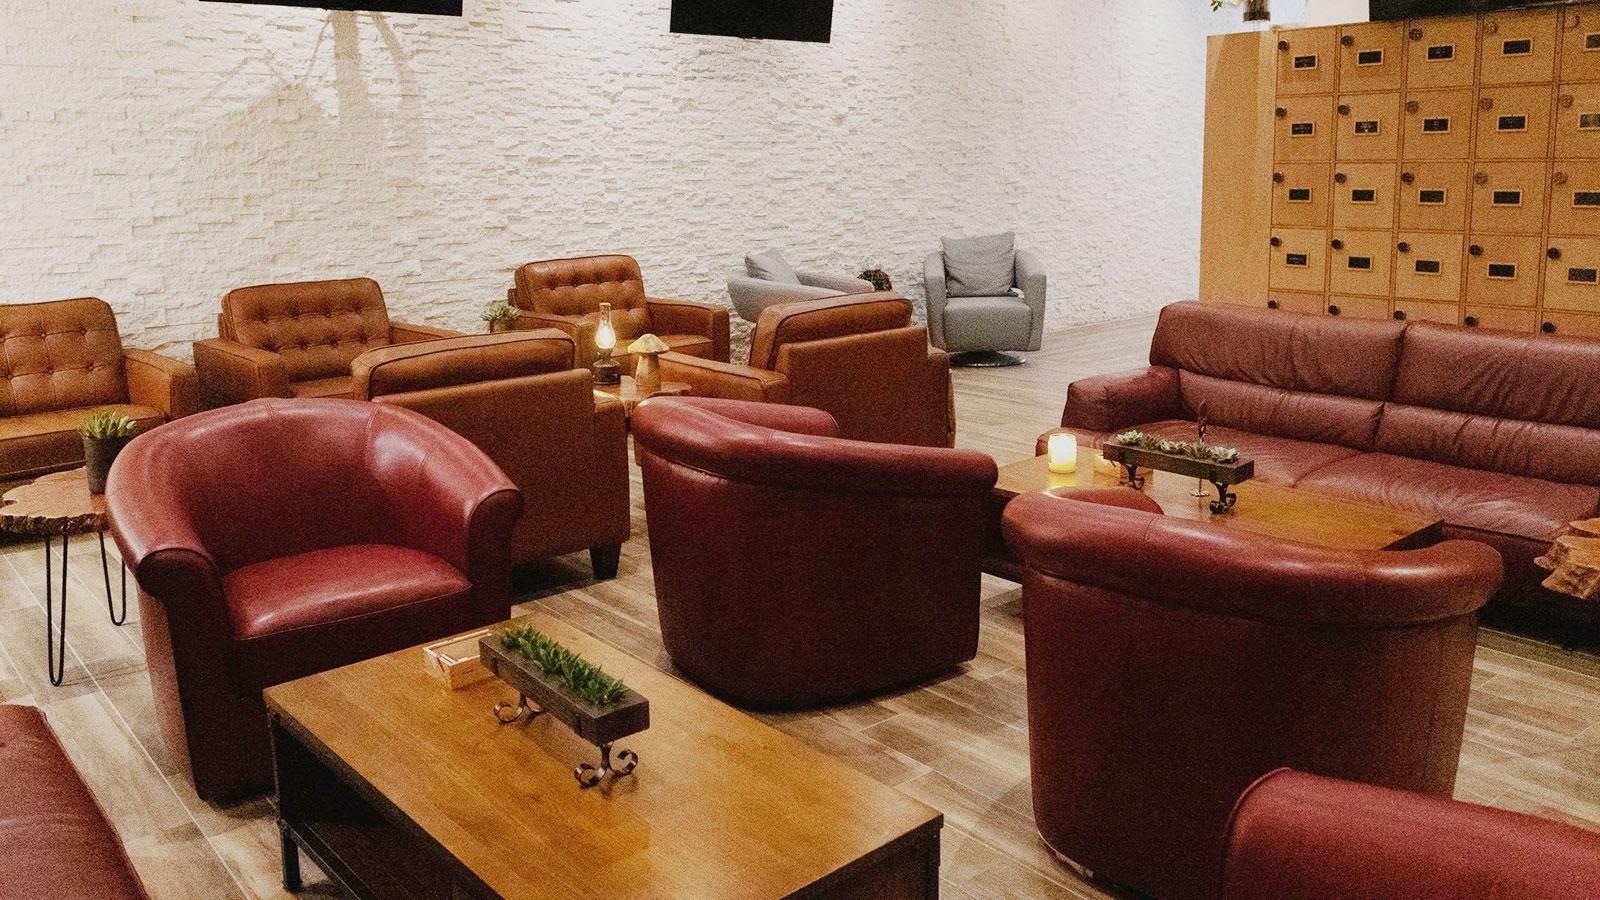 The private area has seven TVs, member lockers and seating in red leather chairs and sofas for about 45.